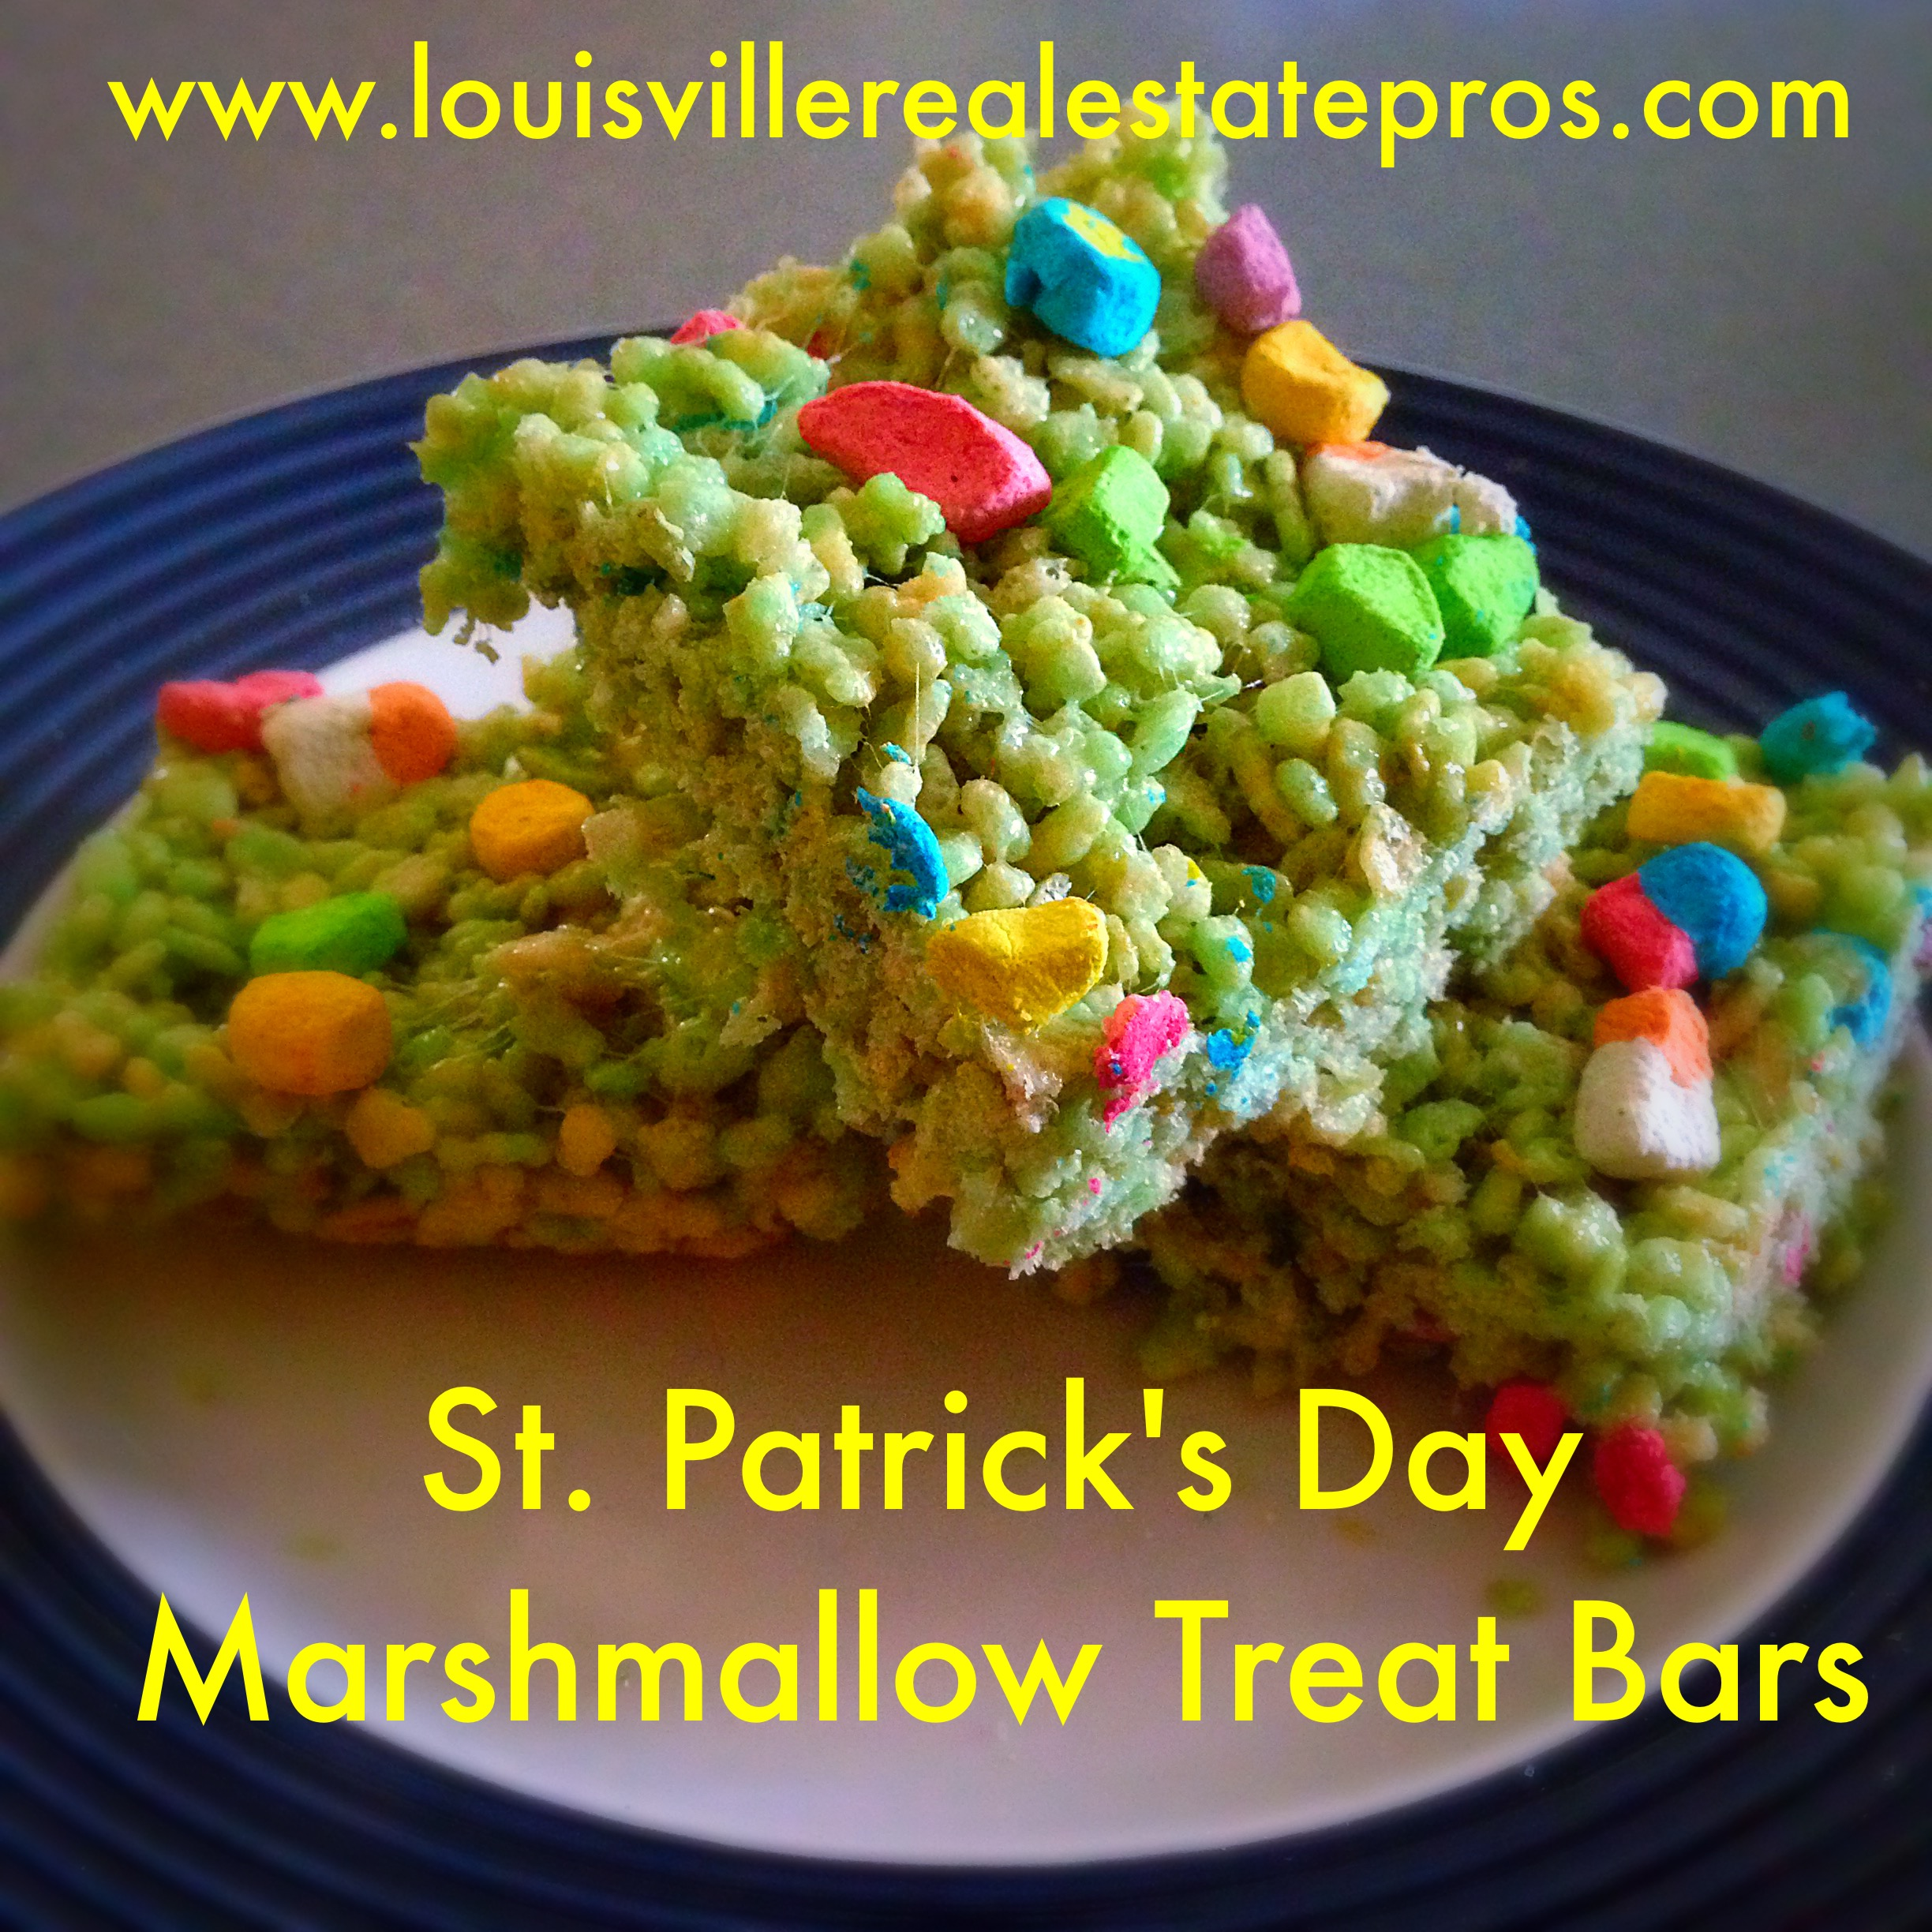 St. Patrick's Day Marshmallow Treat Bars